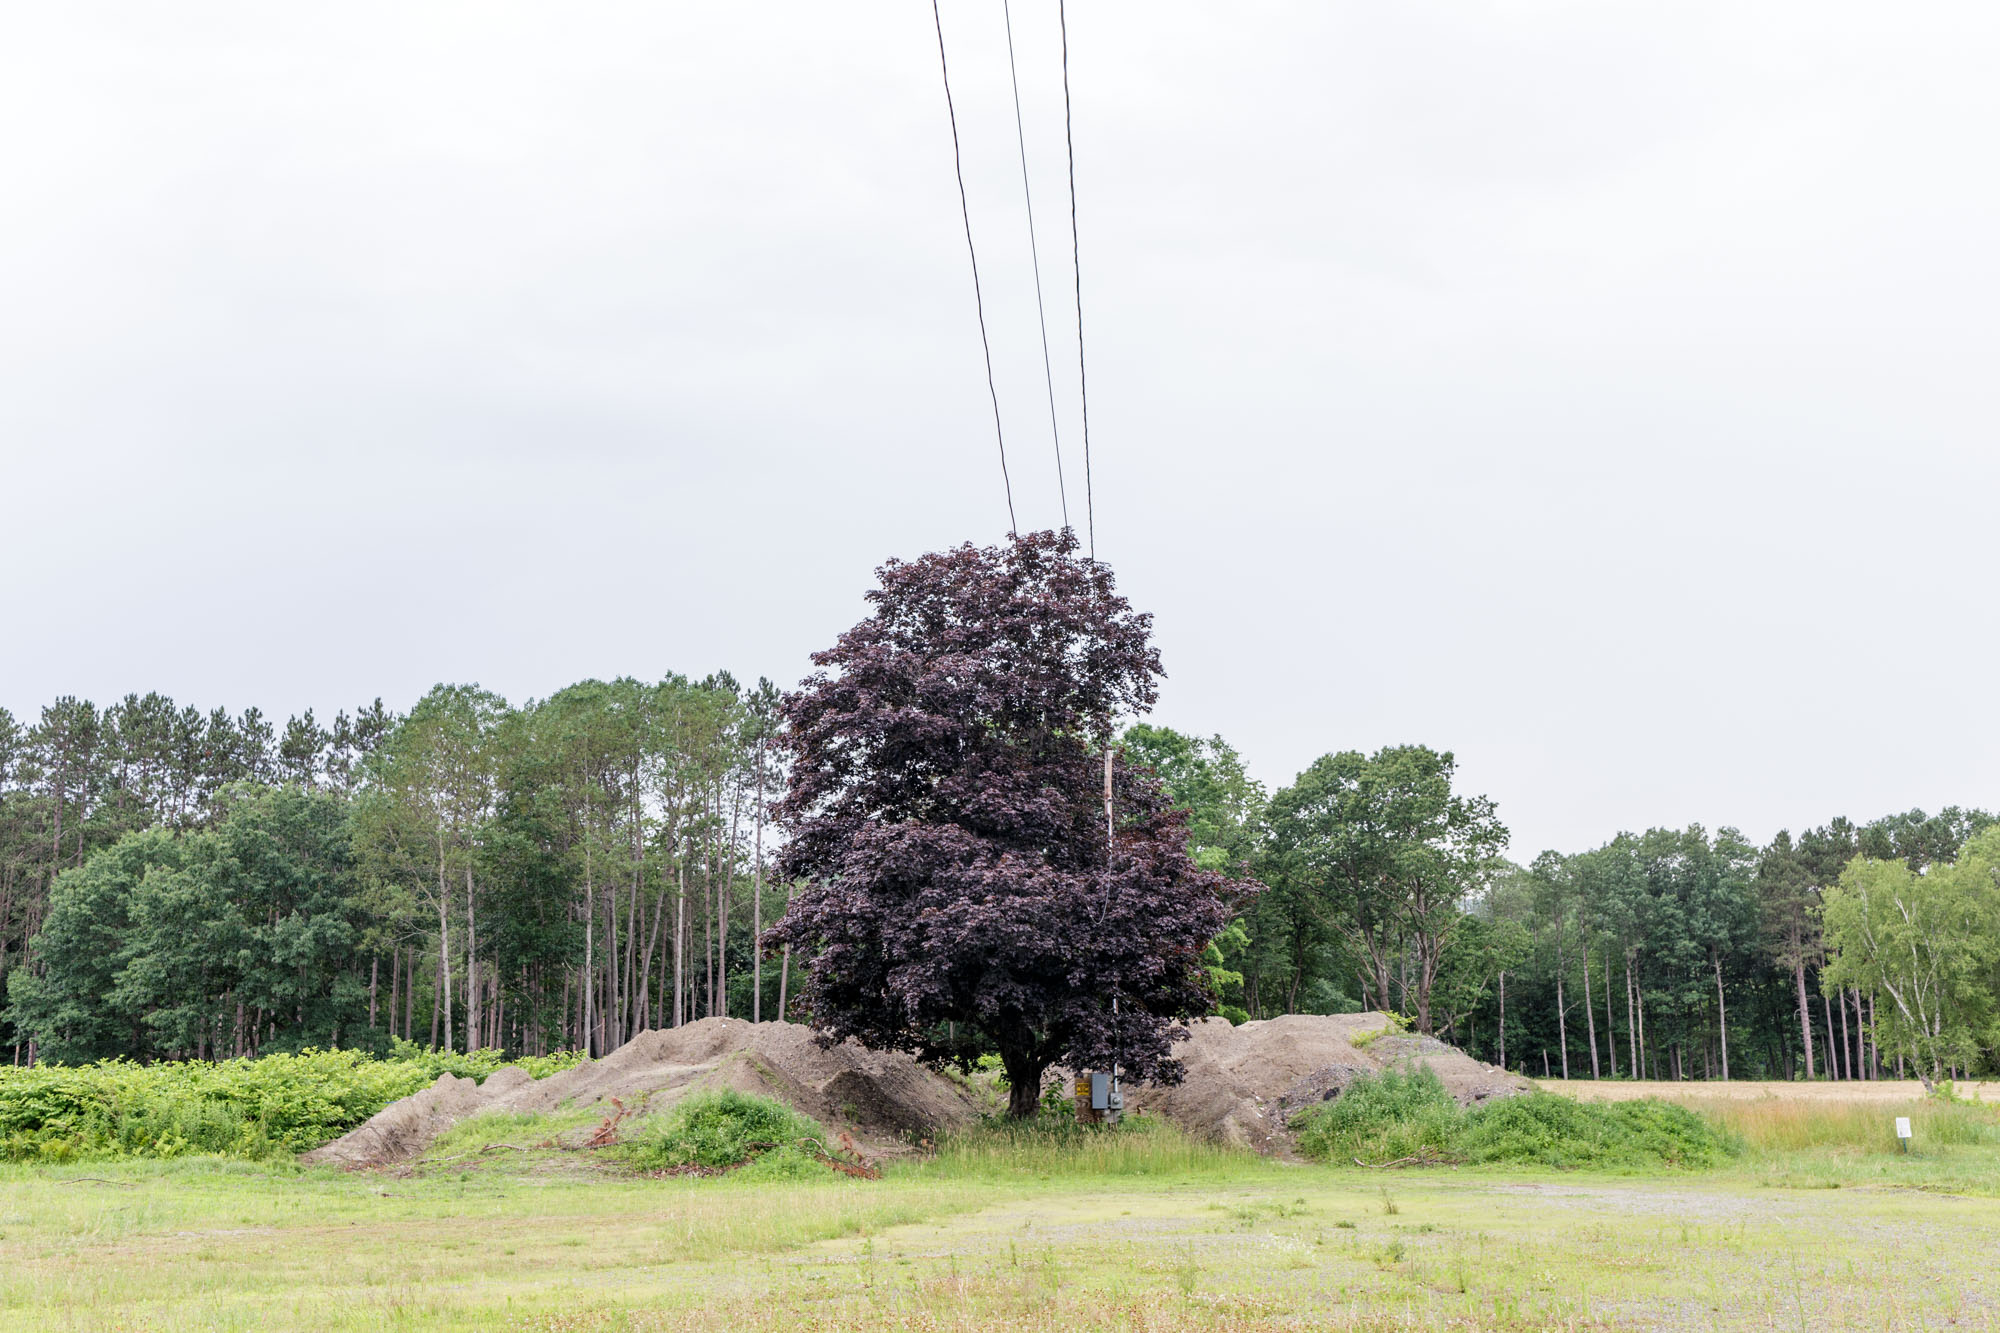 Tree in Field with Power Lines